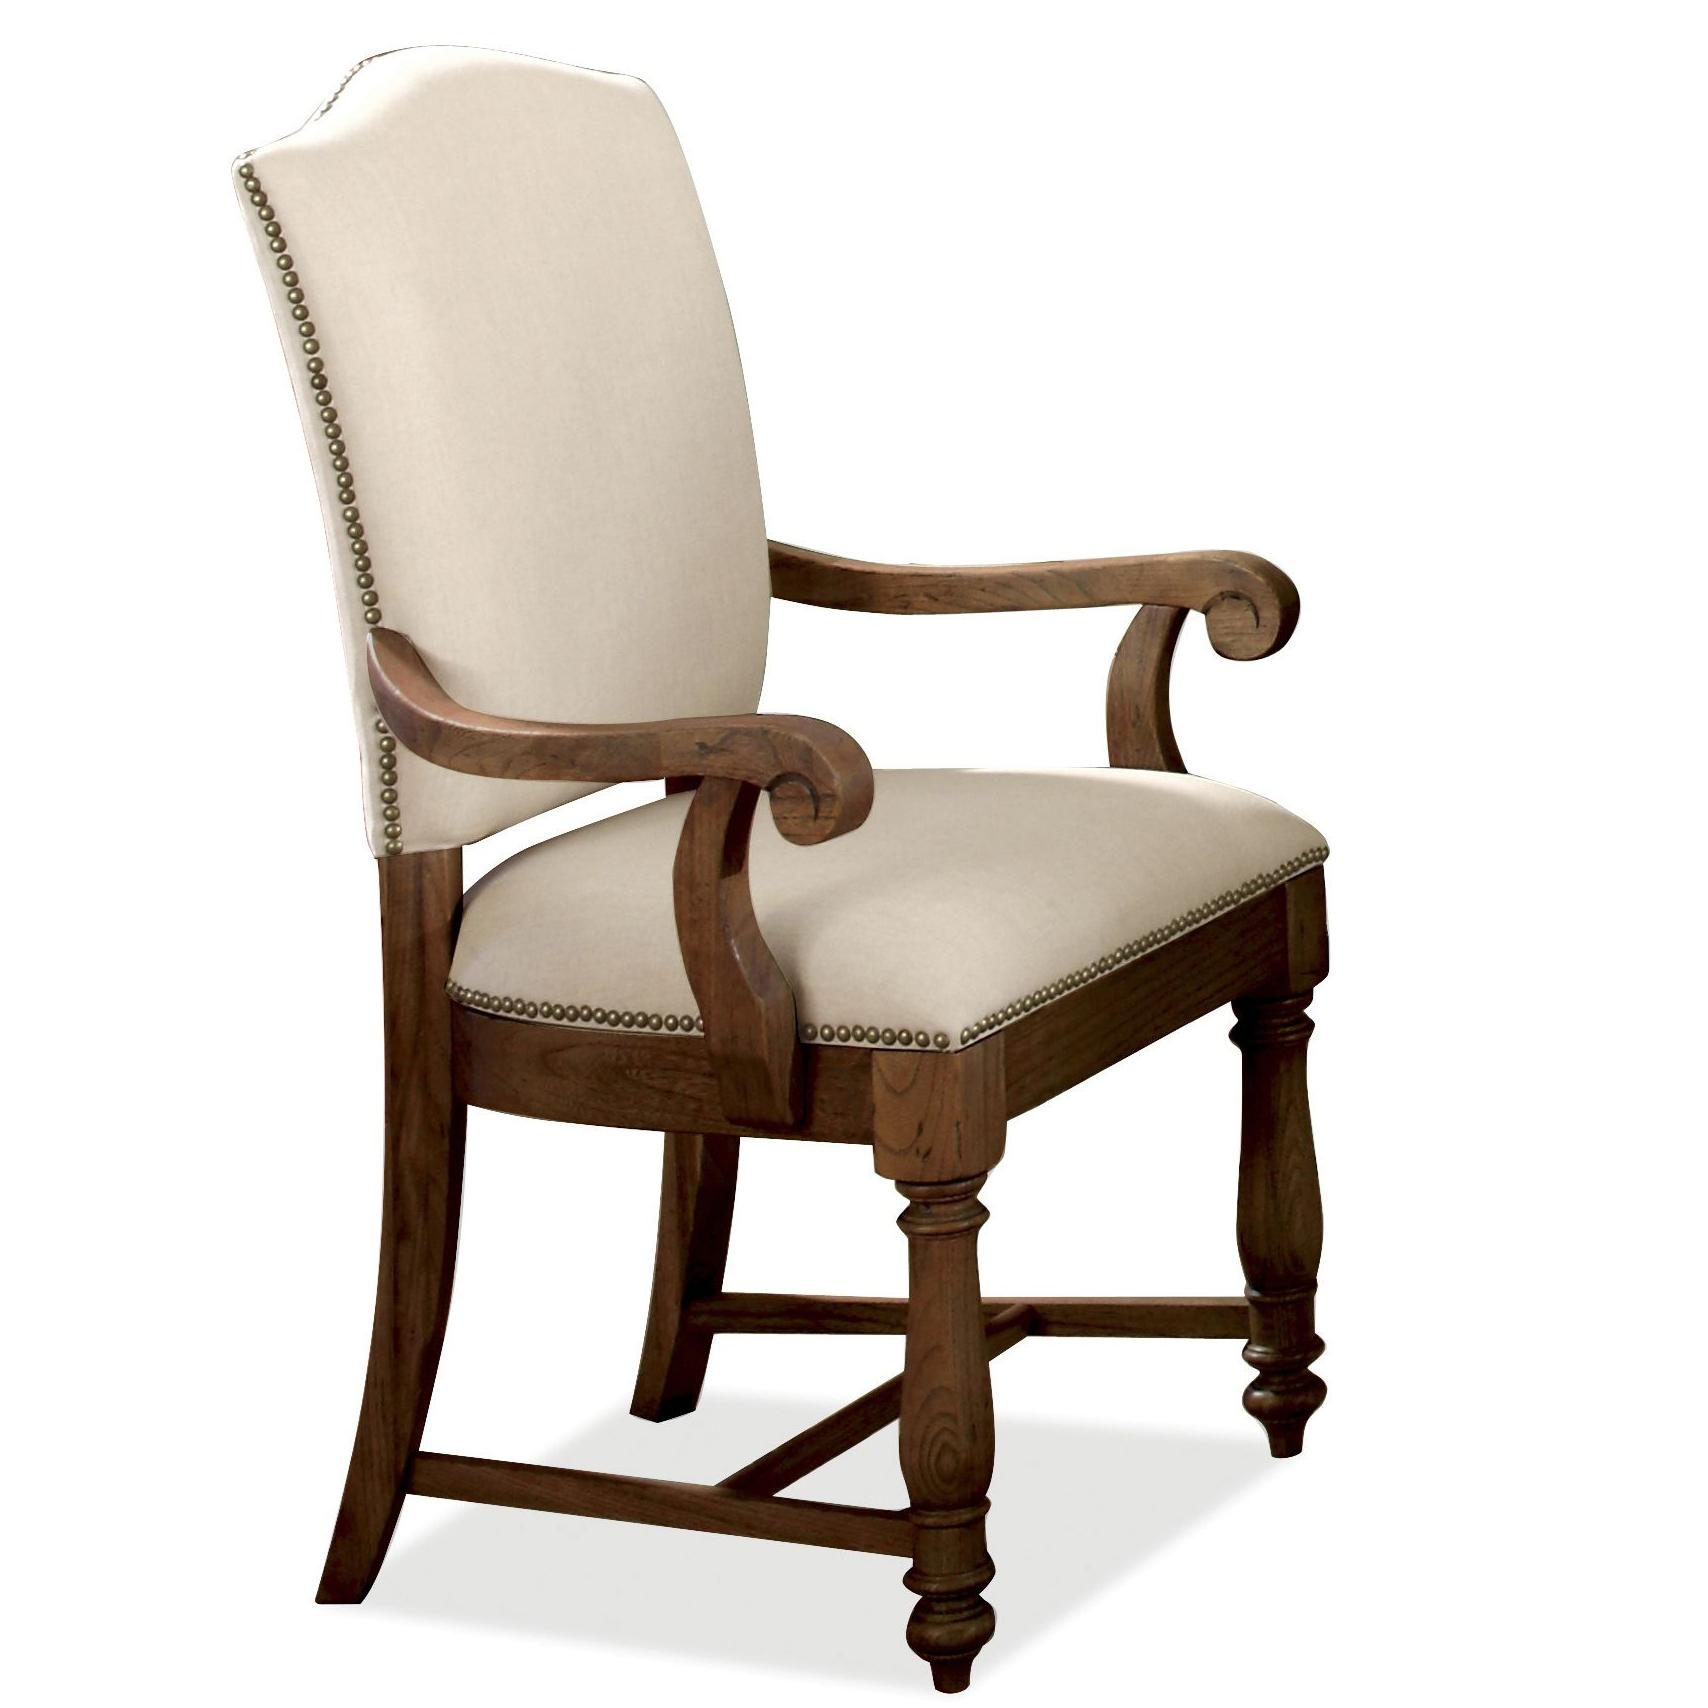 Riverside Furniture Castlewood Upholstered Dining Arm Chair - Item Number: 33561